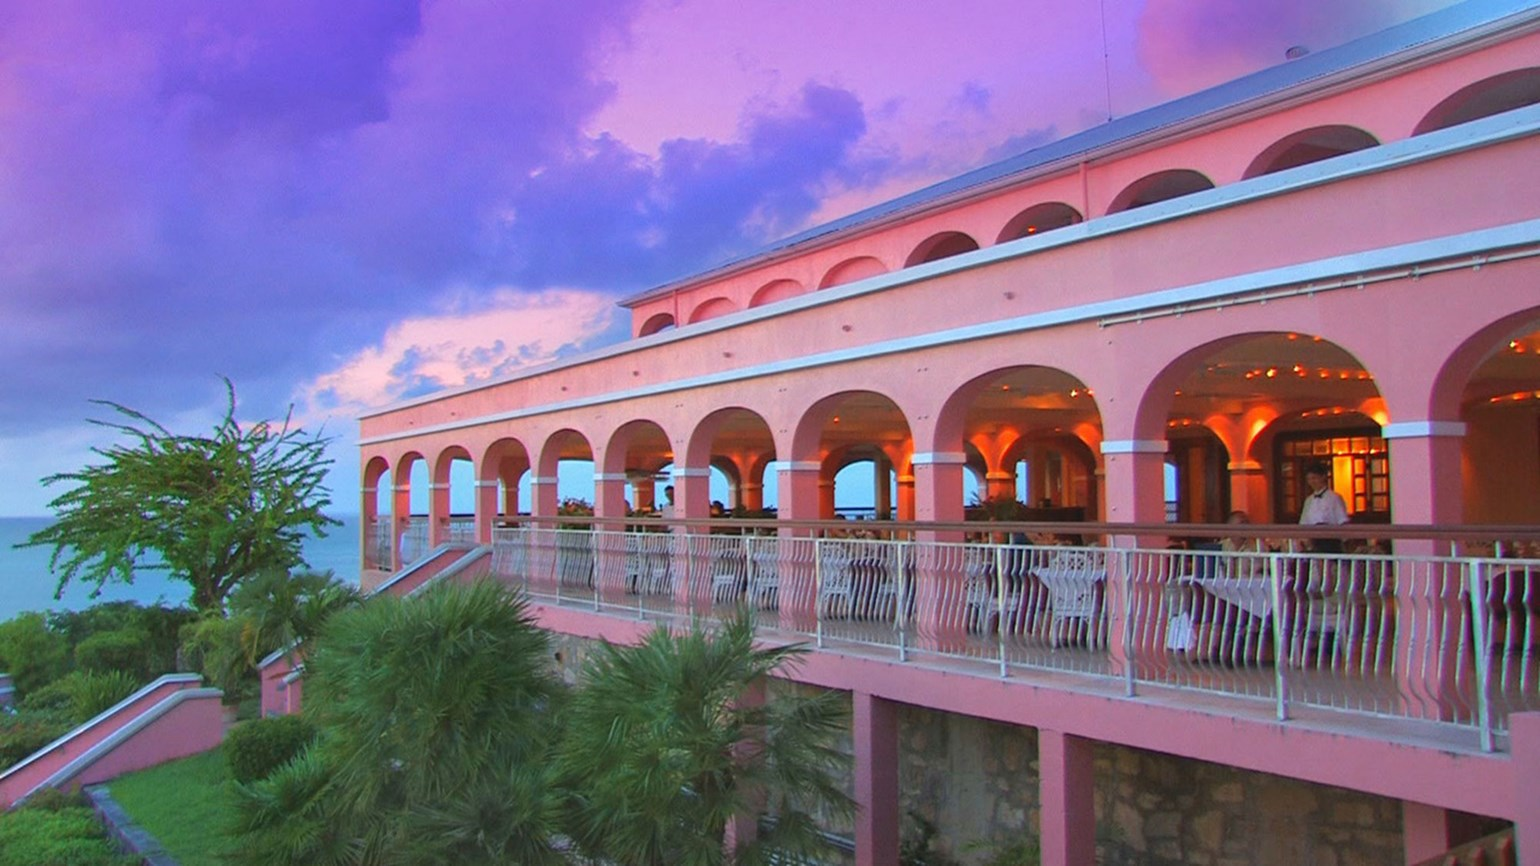 St. Croix's Buccaneer is aligning with Wyndham's Trademark Collection